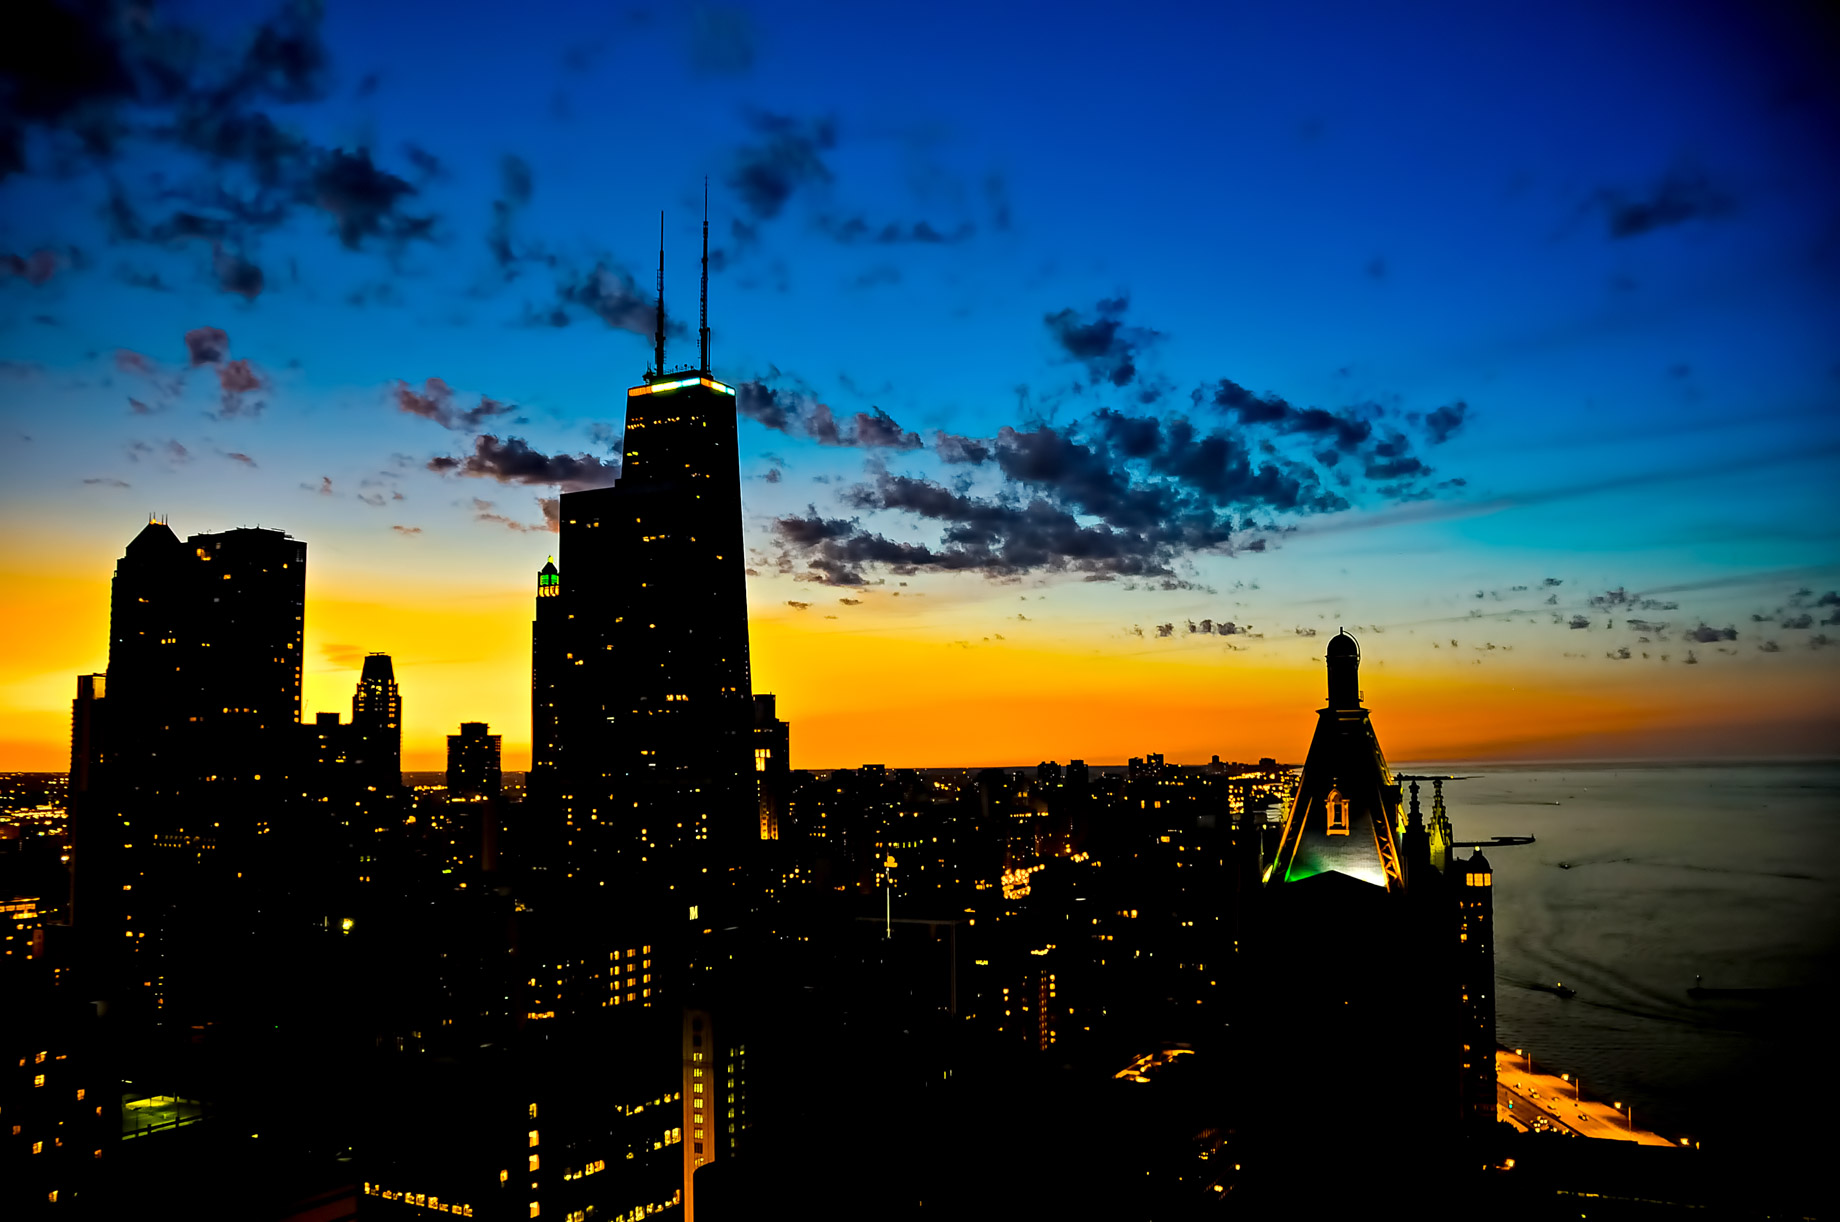 Sunset View of North Side Chicago Streeterville Neighborhood District